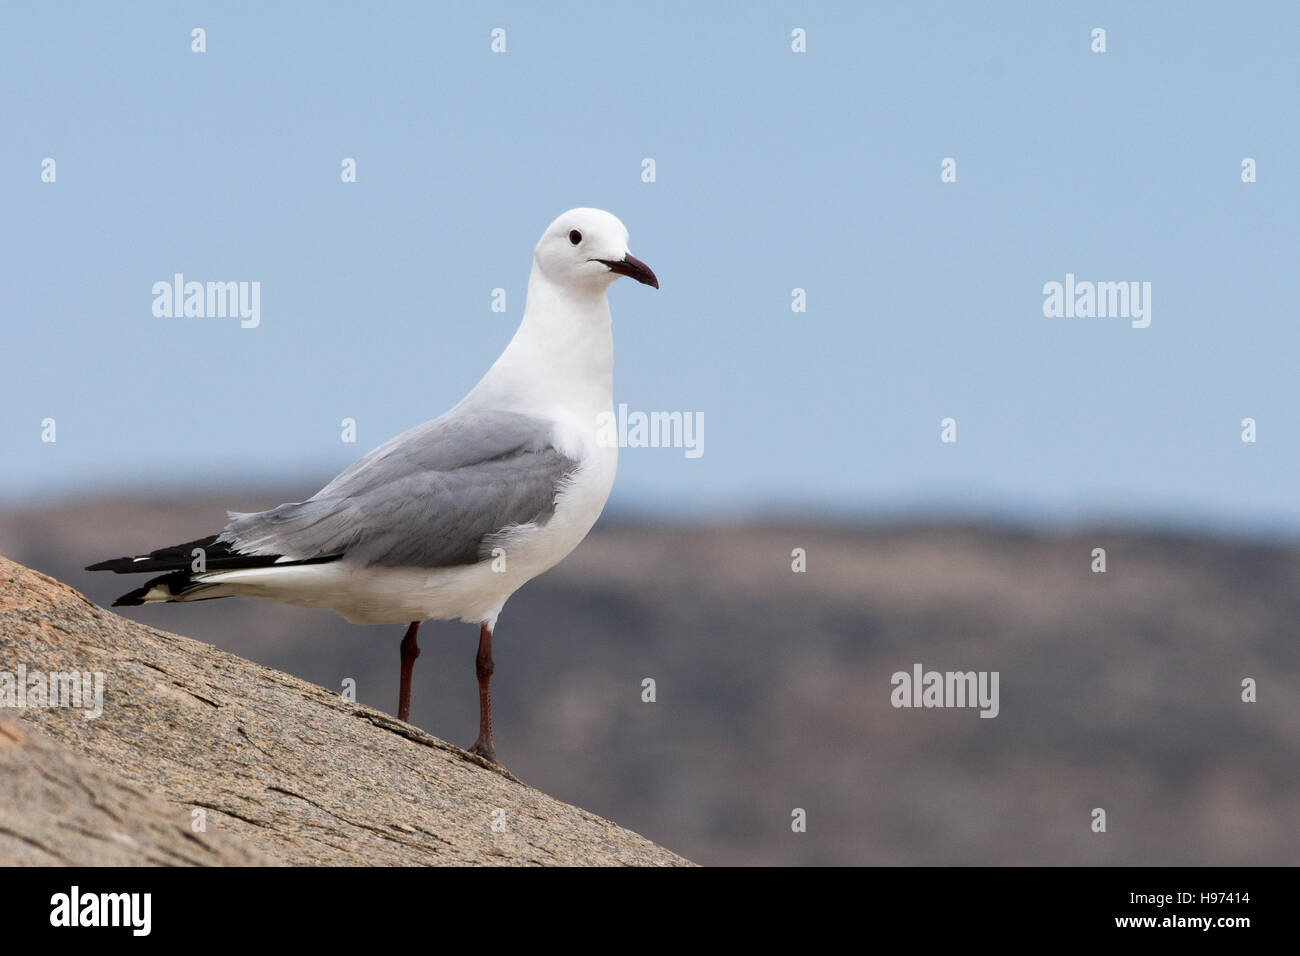 seagull at luederitz bay, seen in namibia, africa. - Stock Image